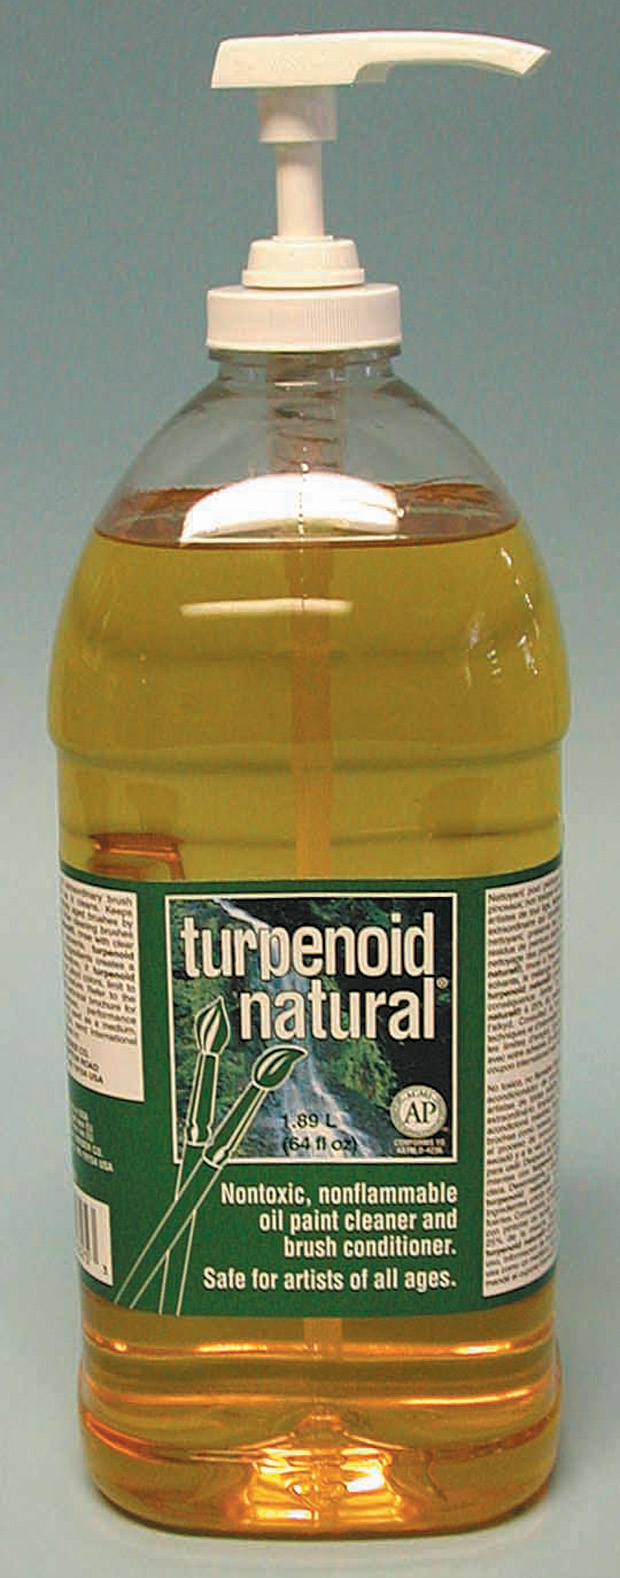 Turpenoid Natural Pump: 1.89 L (1/2 Gallon)